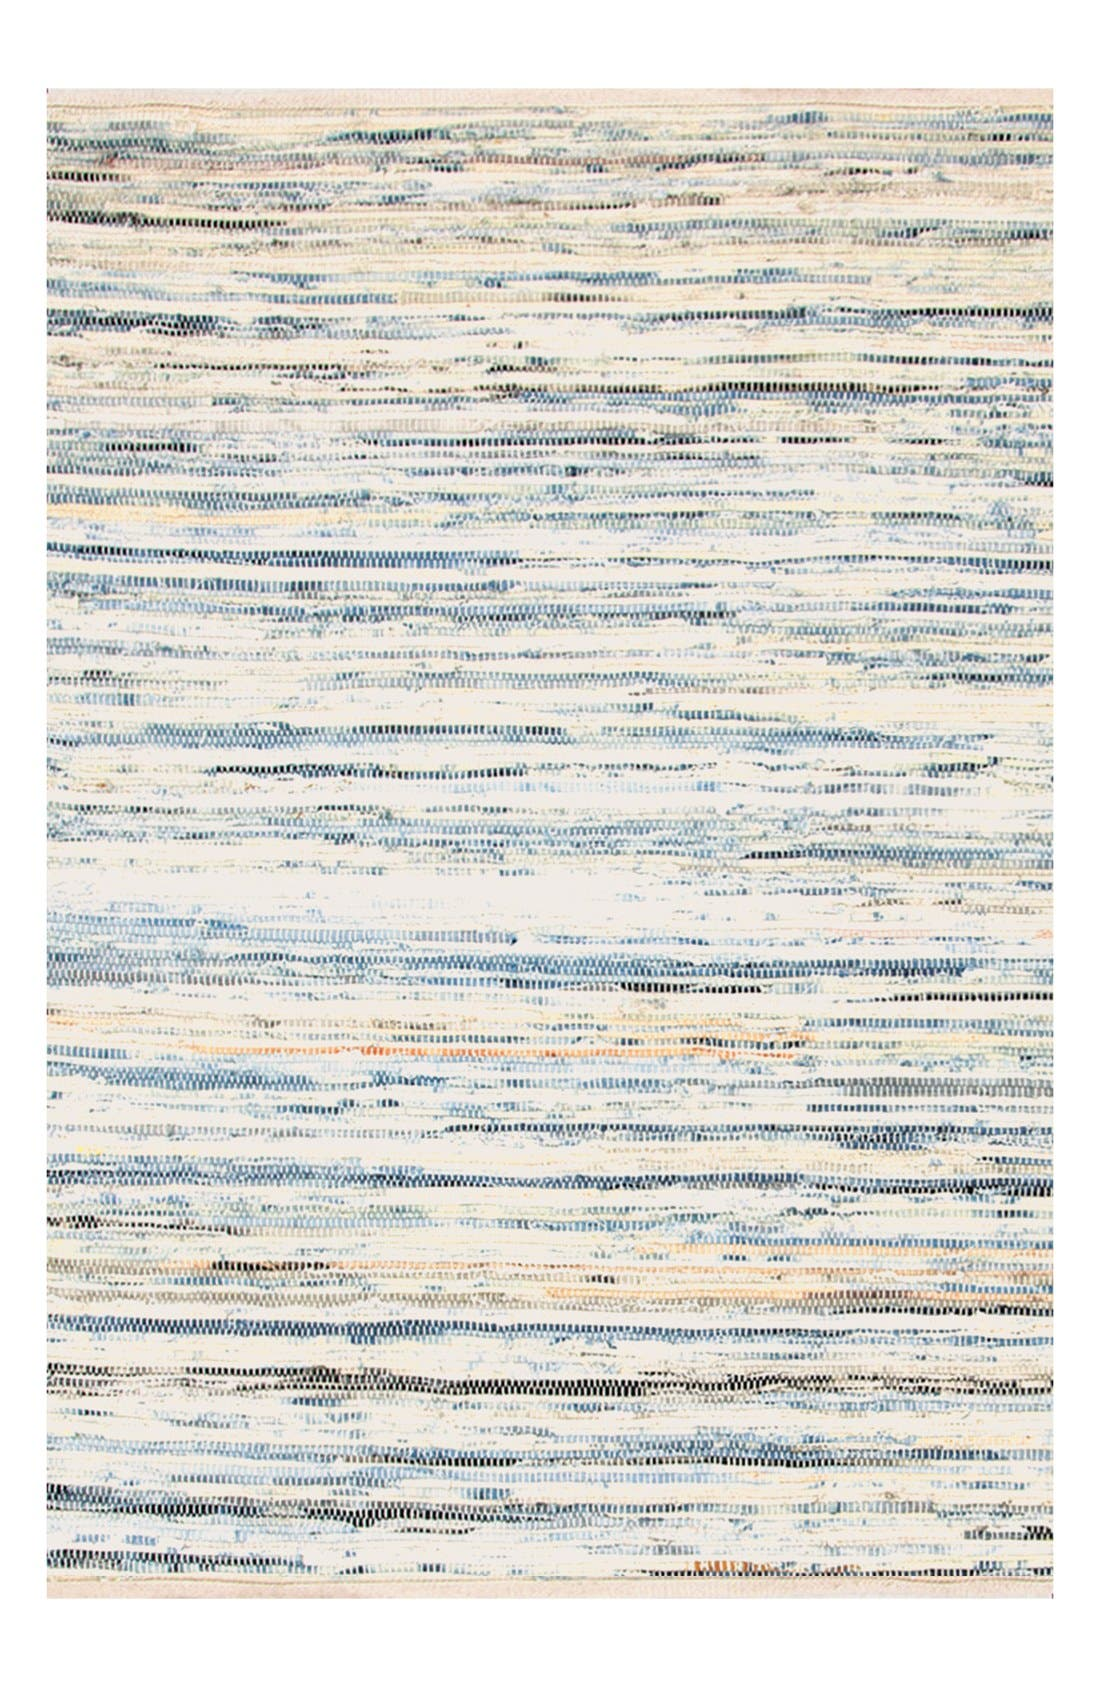 Alternate Image 1 Selected - Dash & Albert 'Rag' Hand Woven Rug